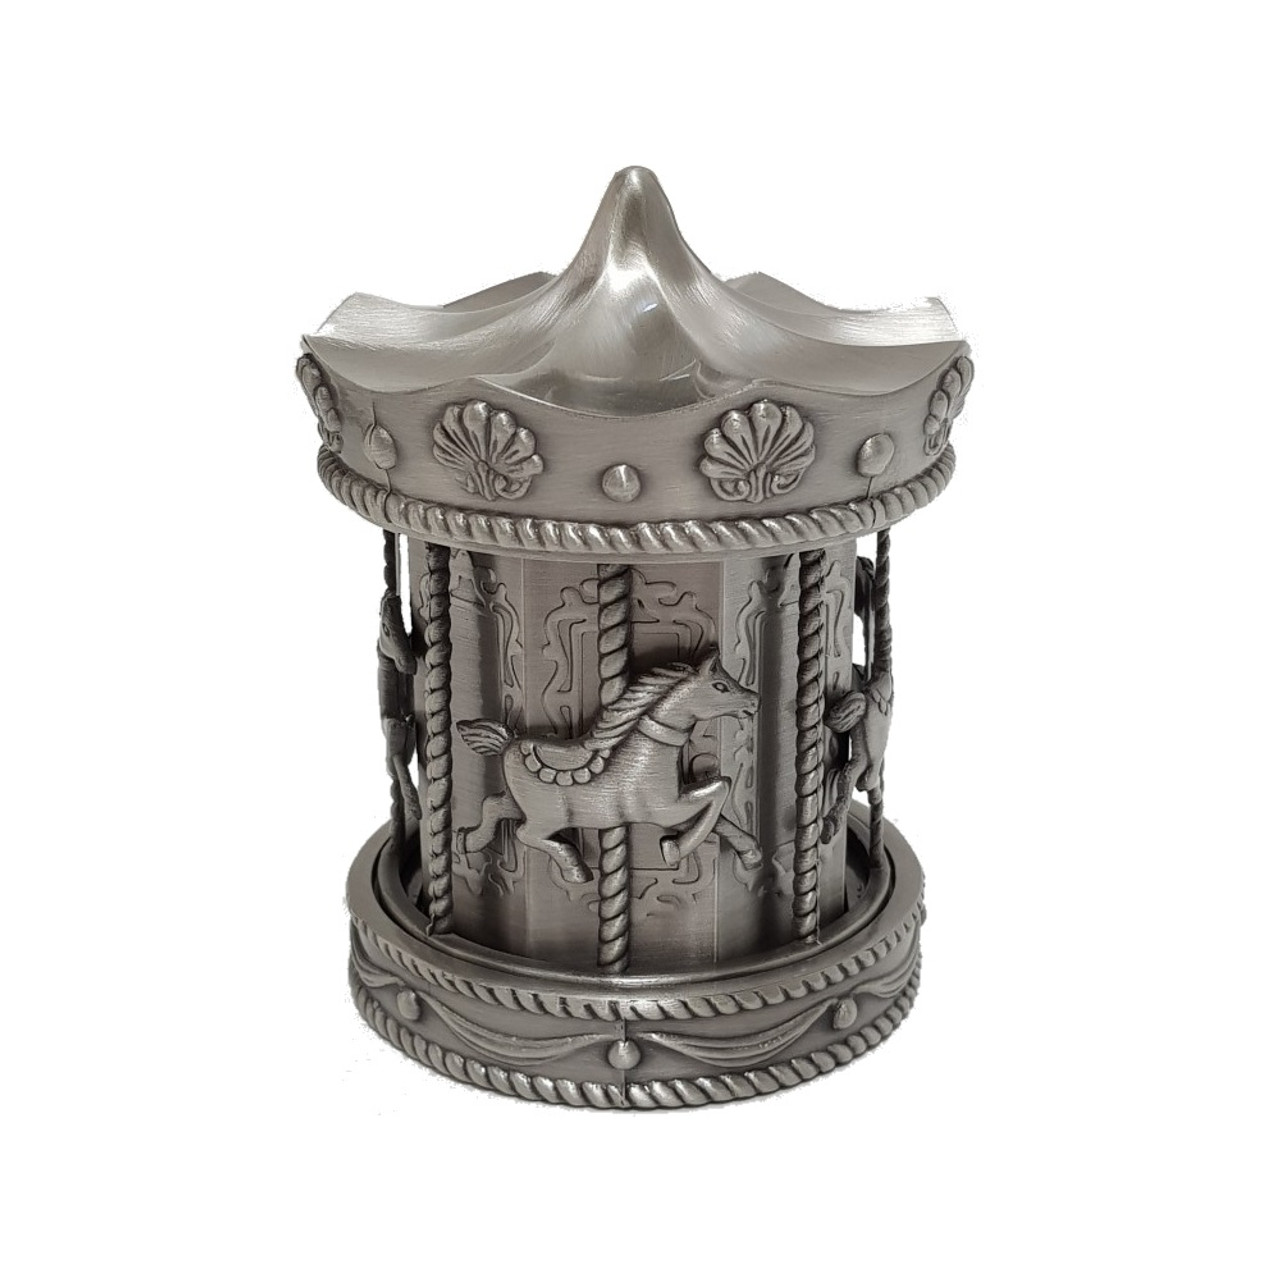 Carousel Money Bank Pewter Finish